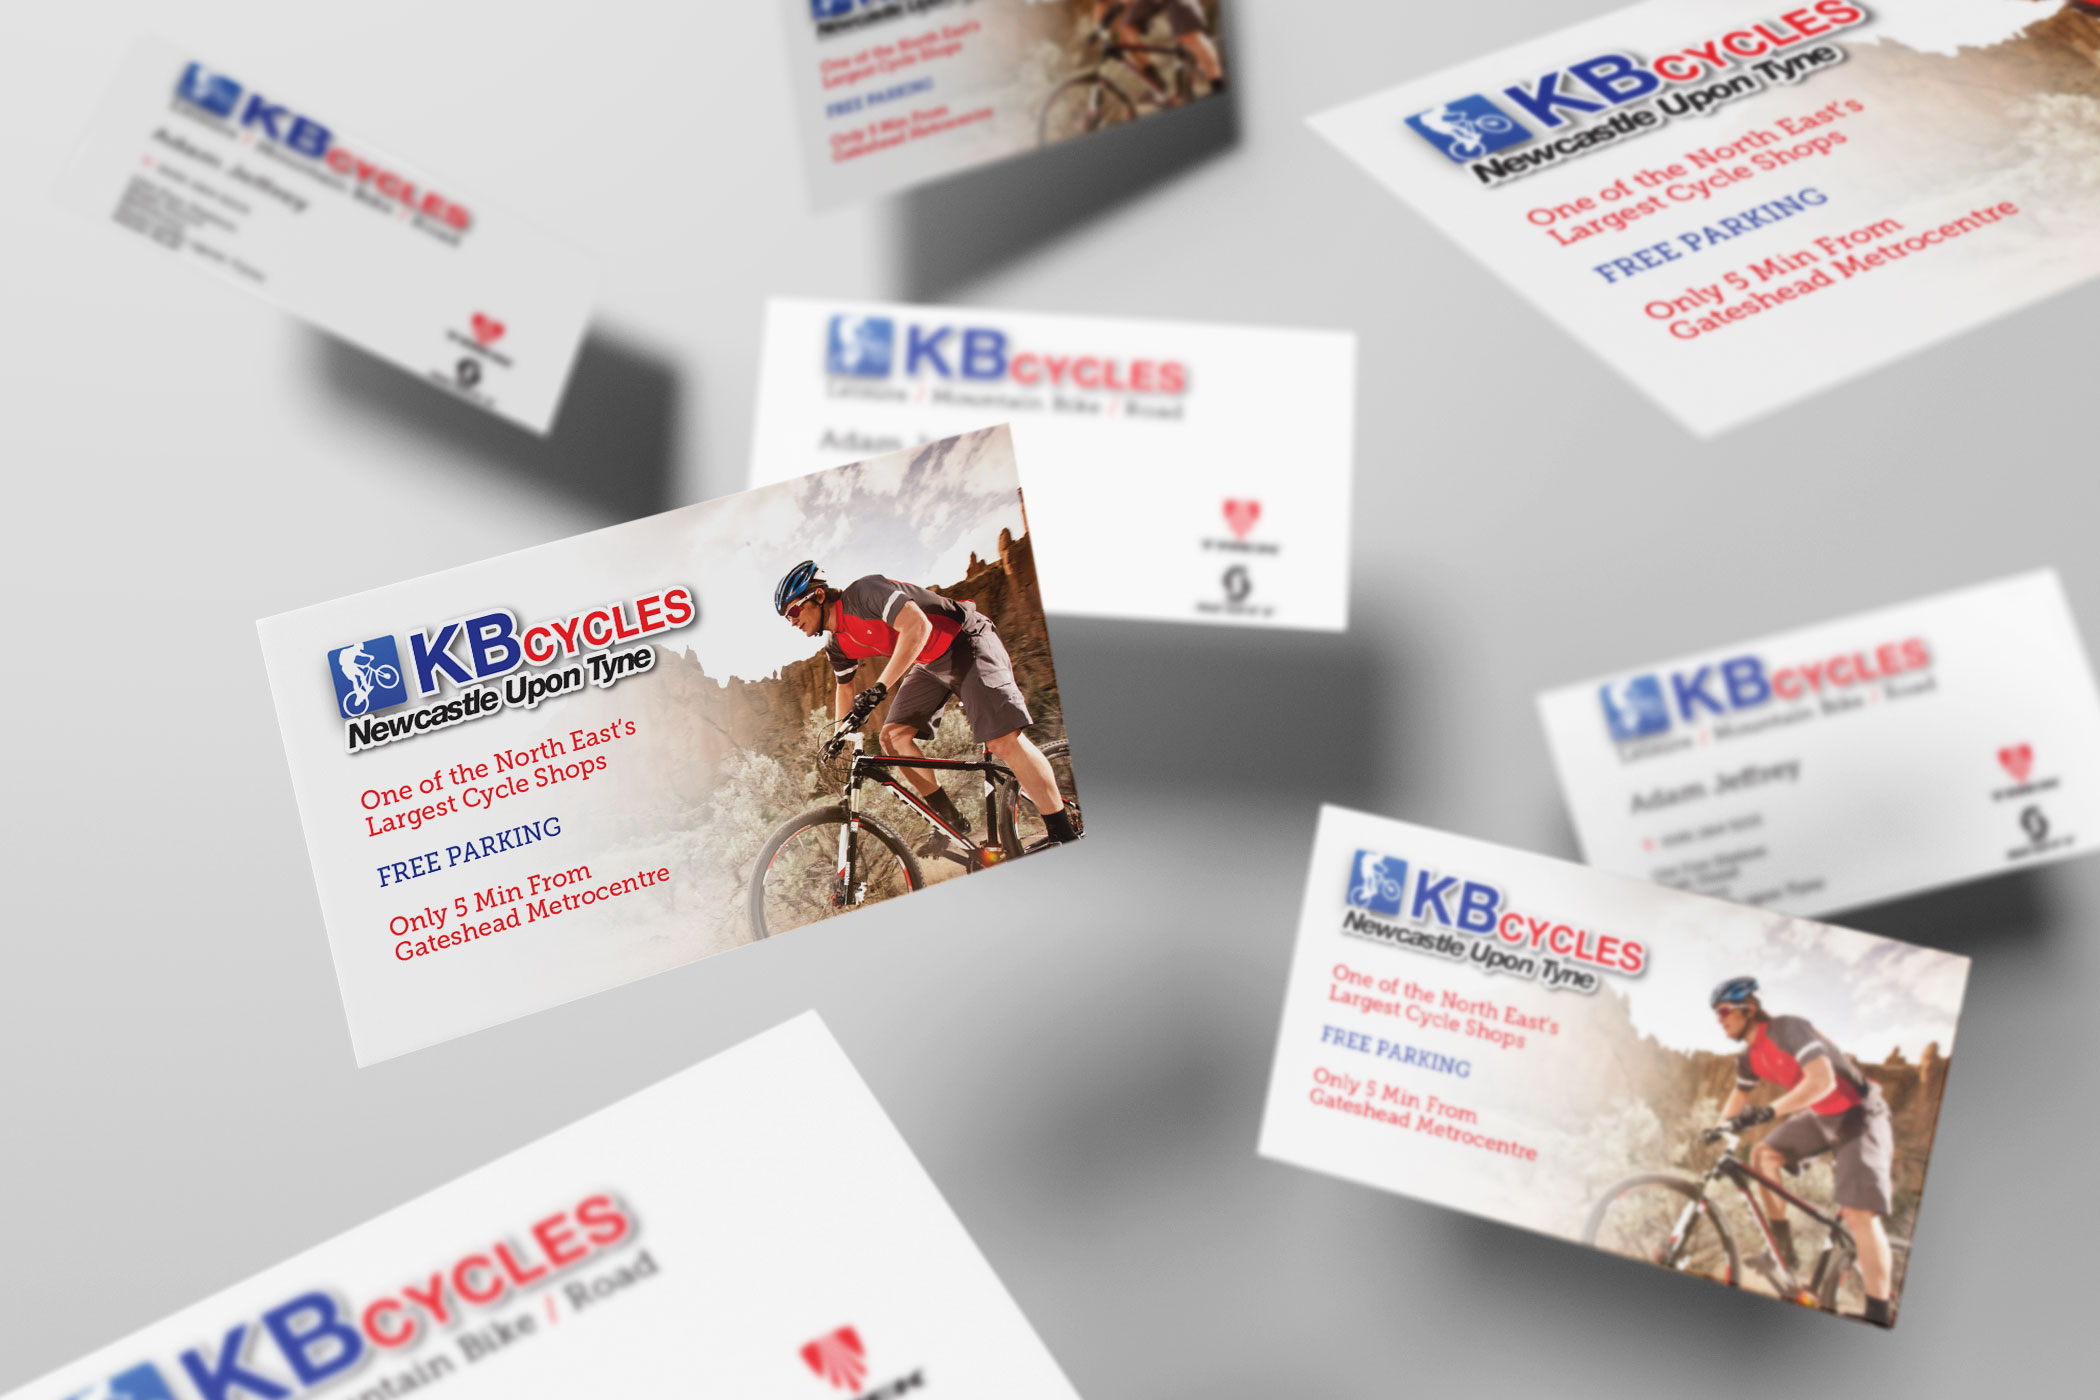 KB Cycles - Business Card Design and Print - Firefly New Media